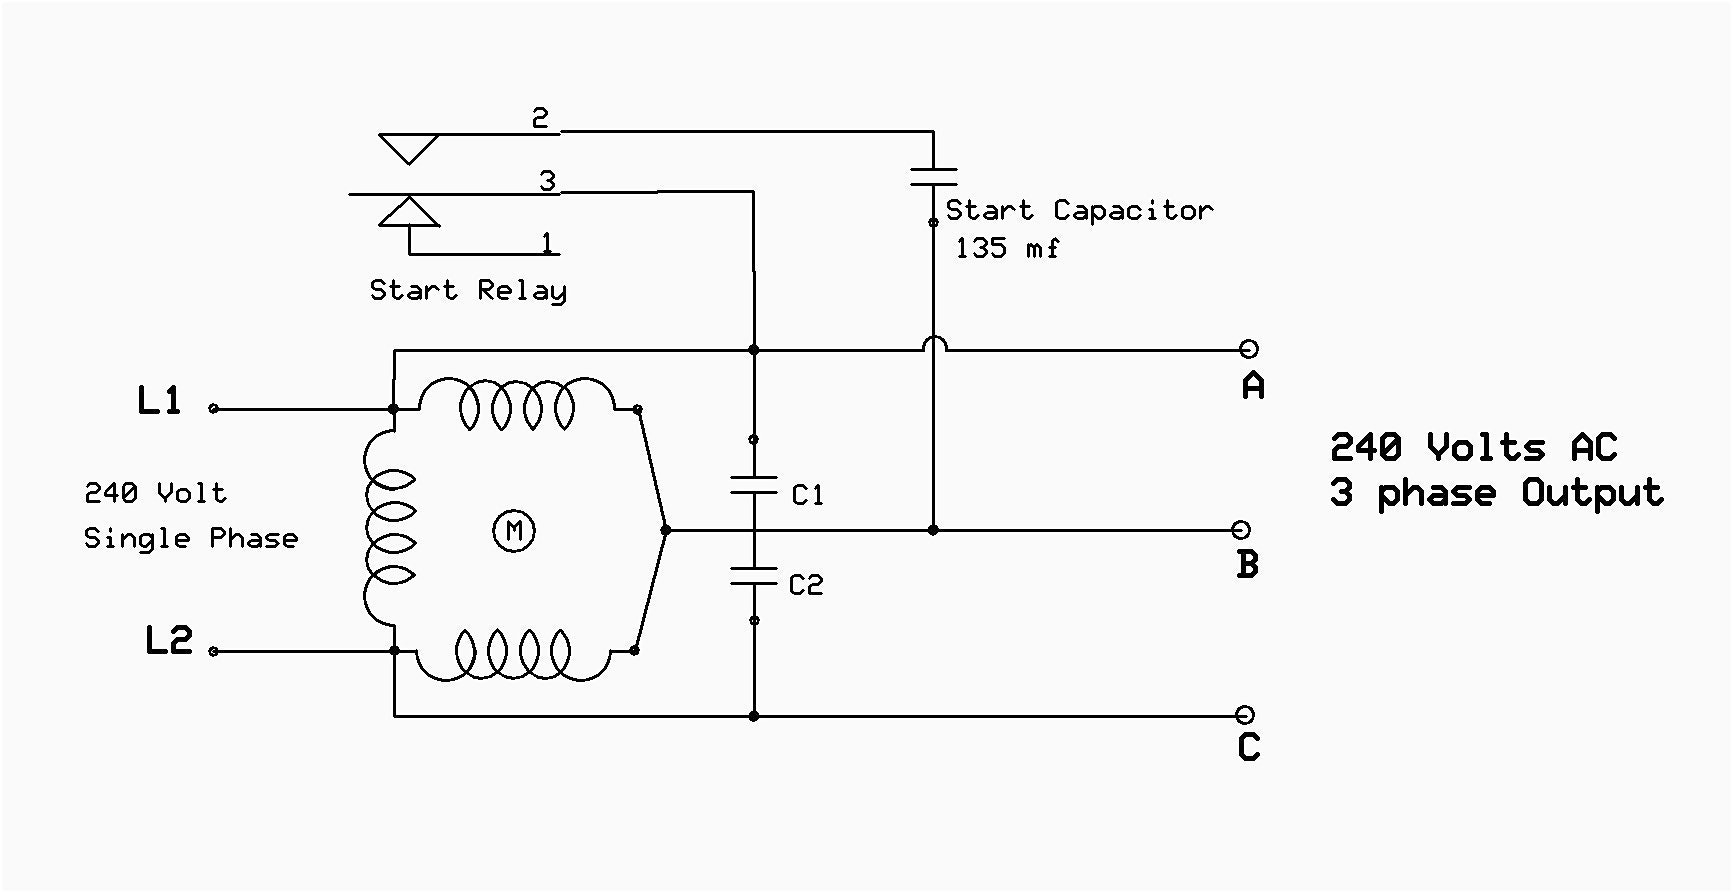 Wiring Diagram For 12 Lead 480 Volt Motor - Wiring Diagram ... on